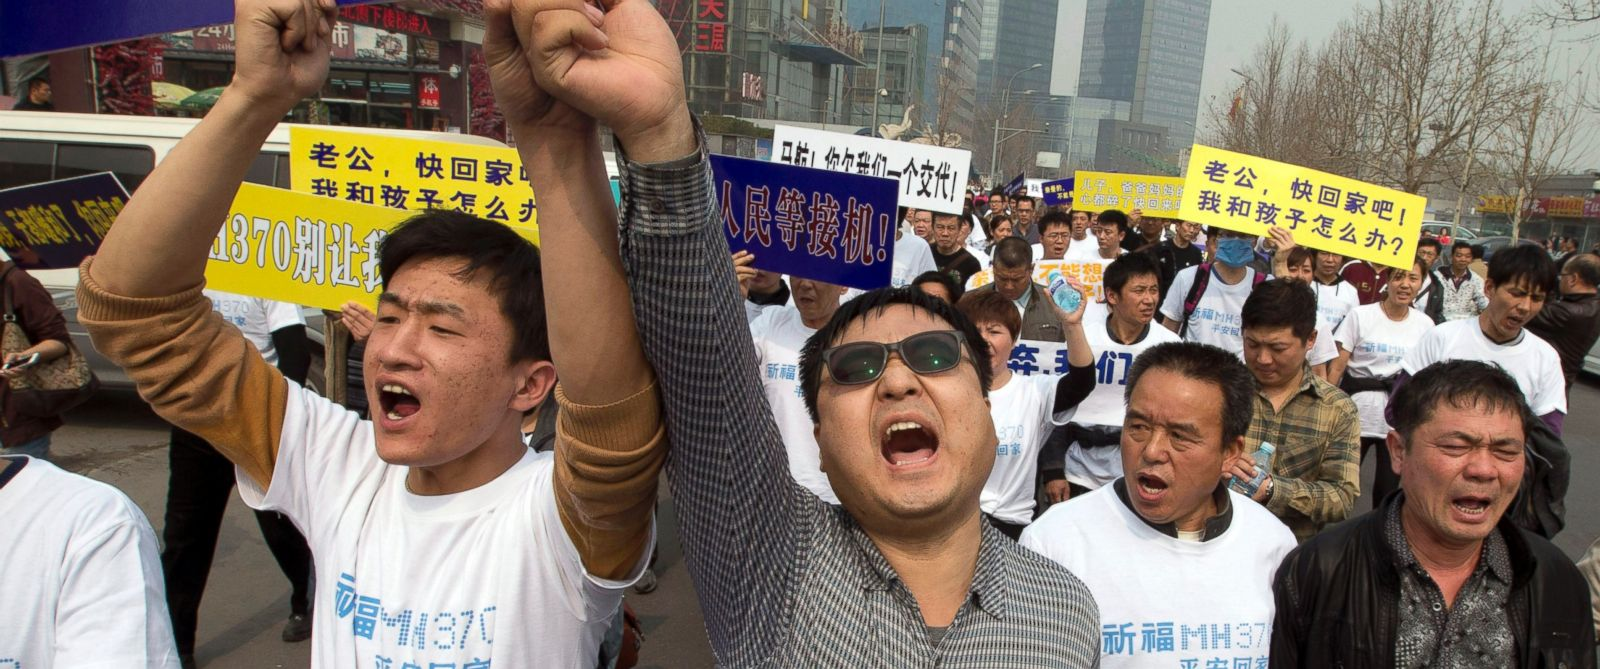 PHOTO: Chinese relatives of passengers aboard the missing Malaysia Airlines plane, flight MH370, shout in protest as they march towards the Malaysia embassy in Beijing, China, Tuesday, March 25, 2014.